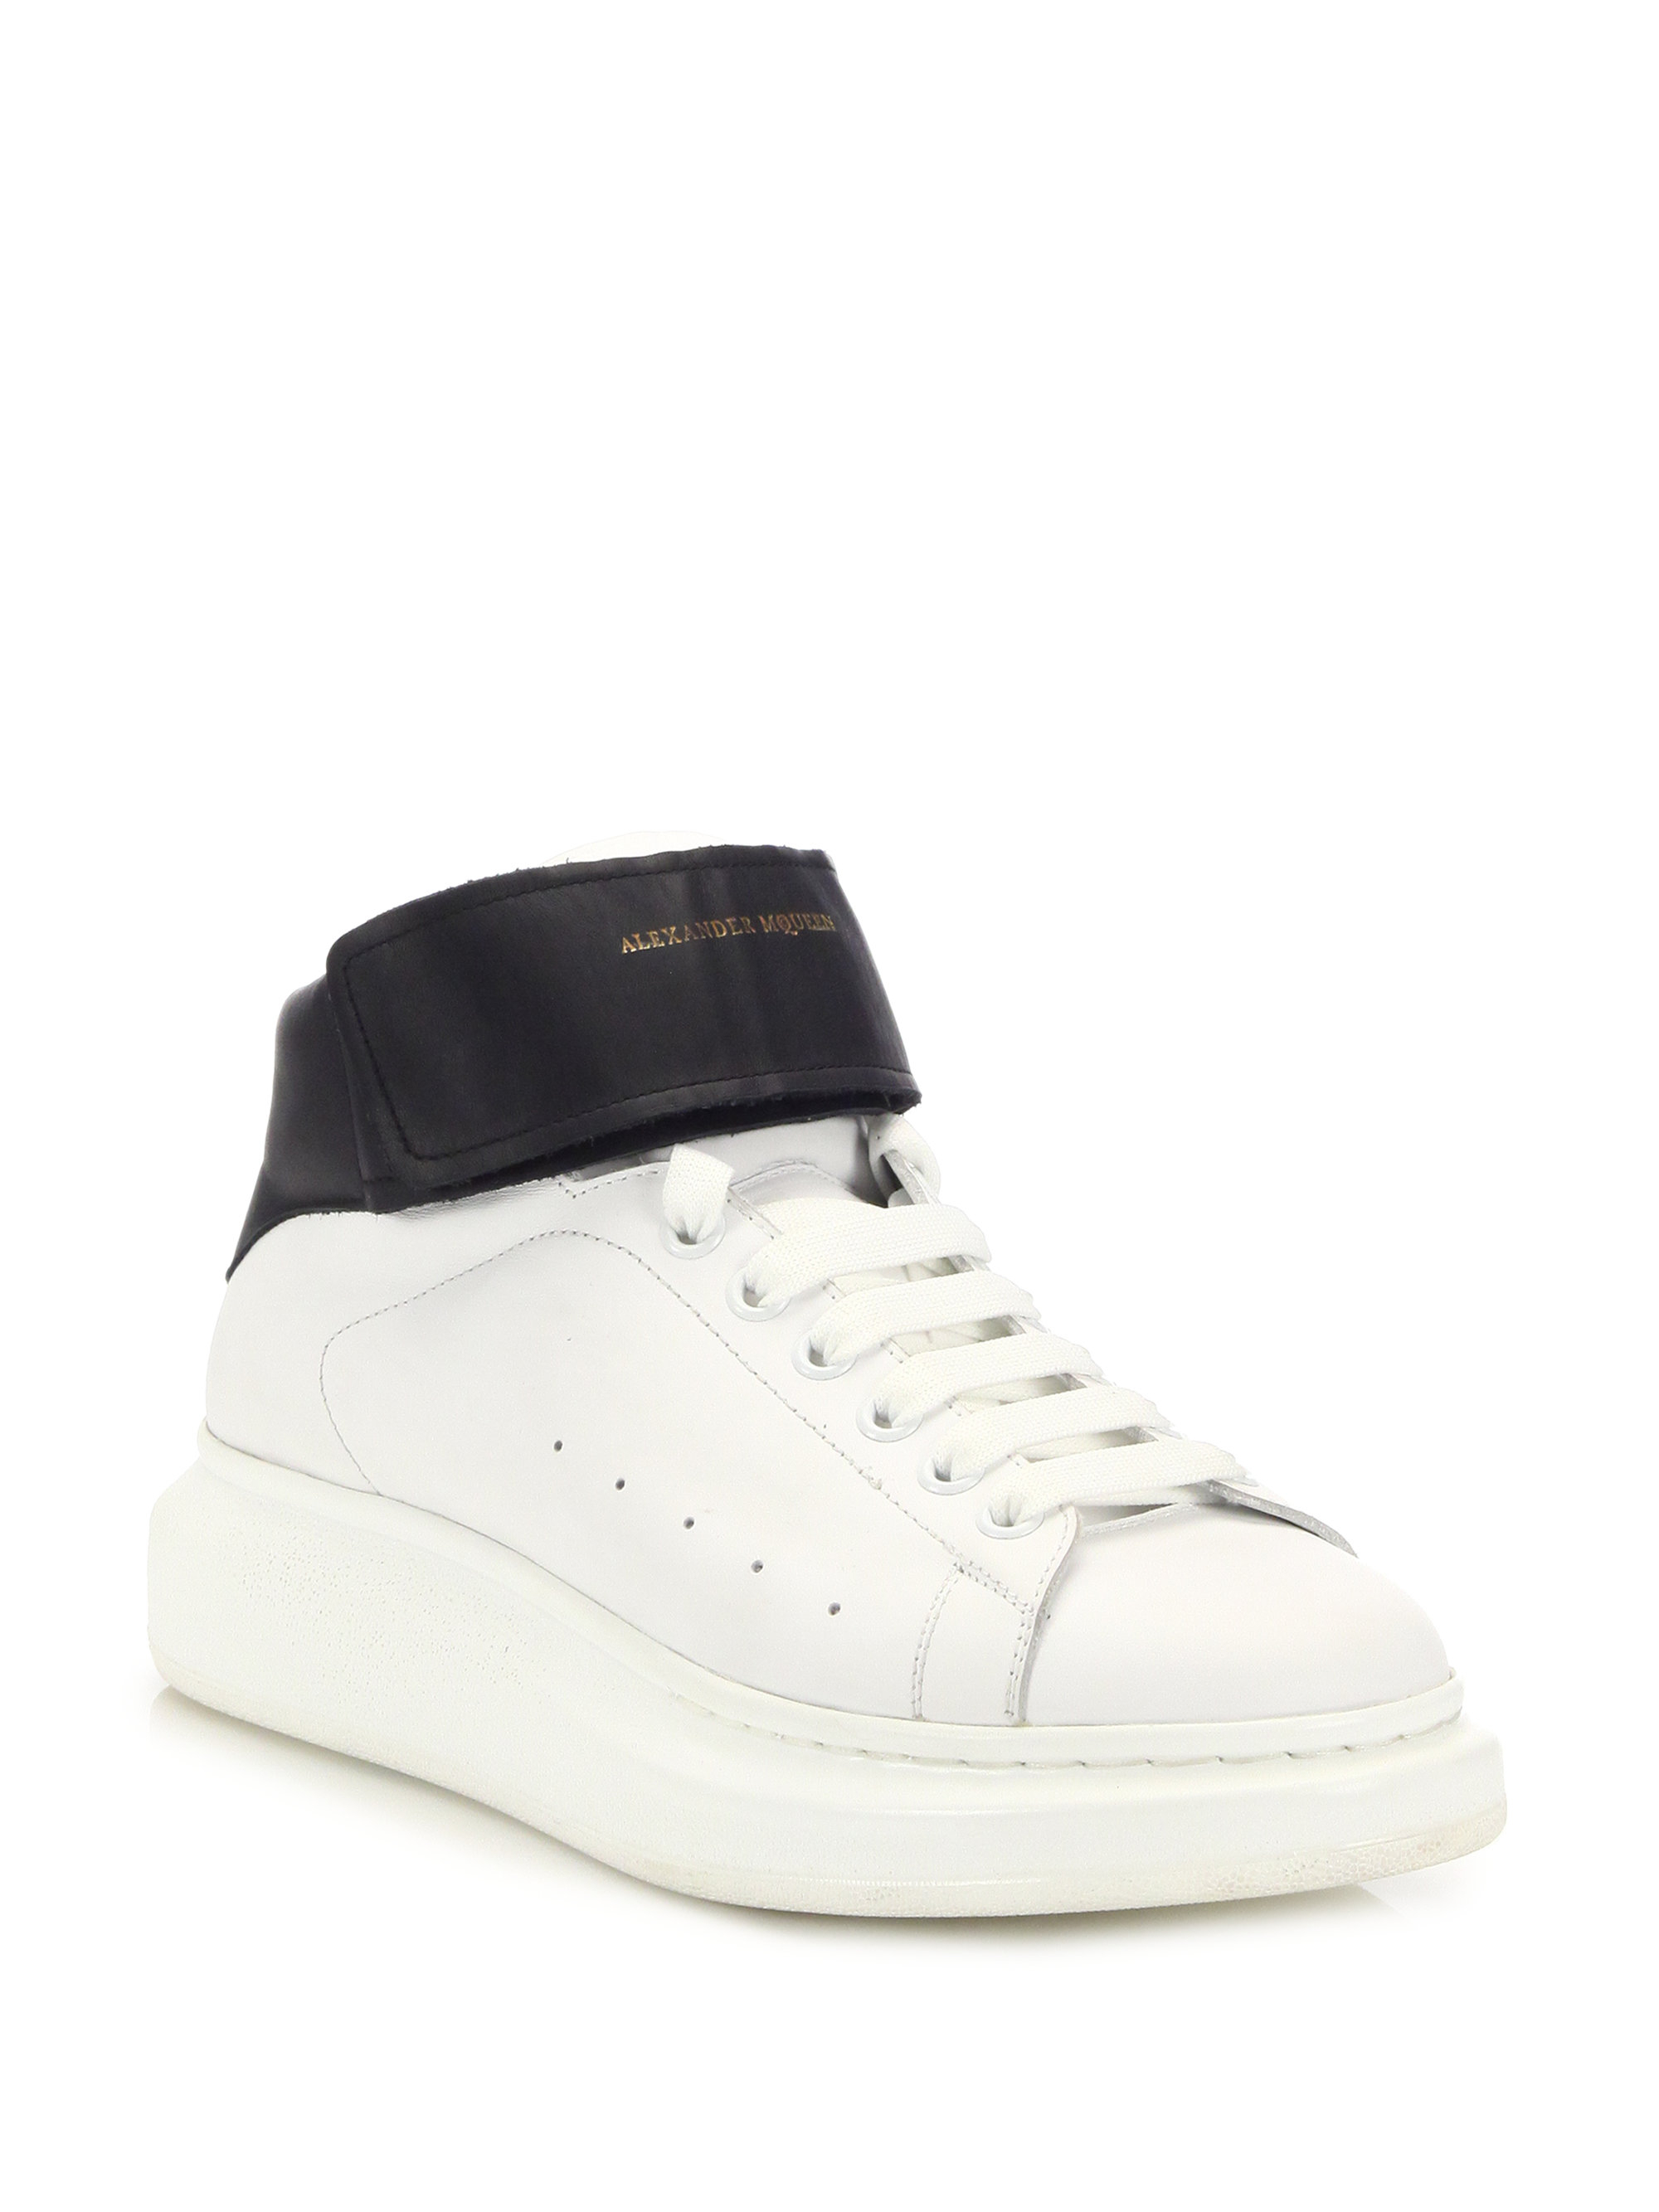 Alexander Mcqueen Ankle Strap High Top Sneakers In Black